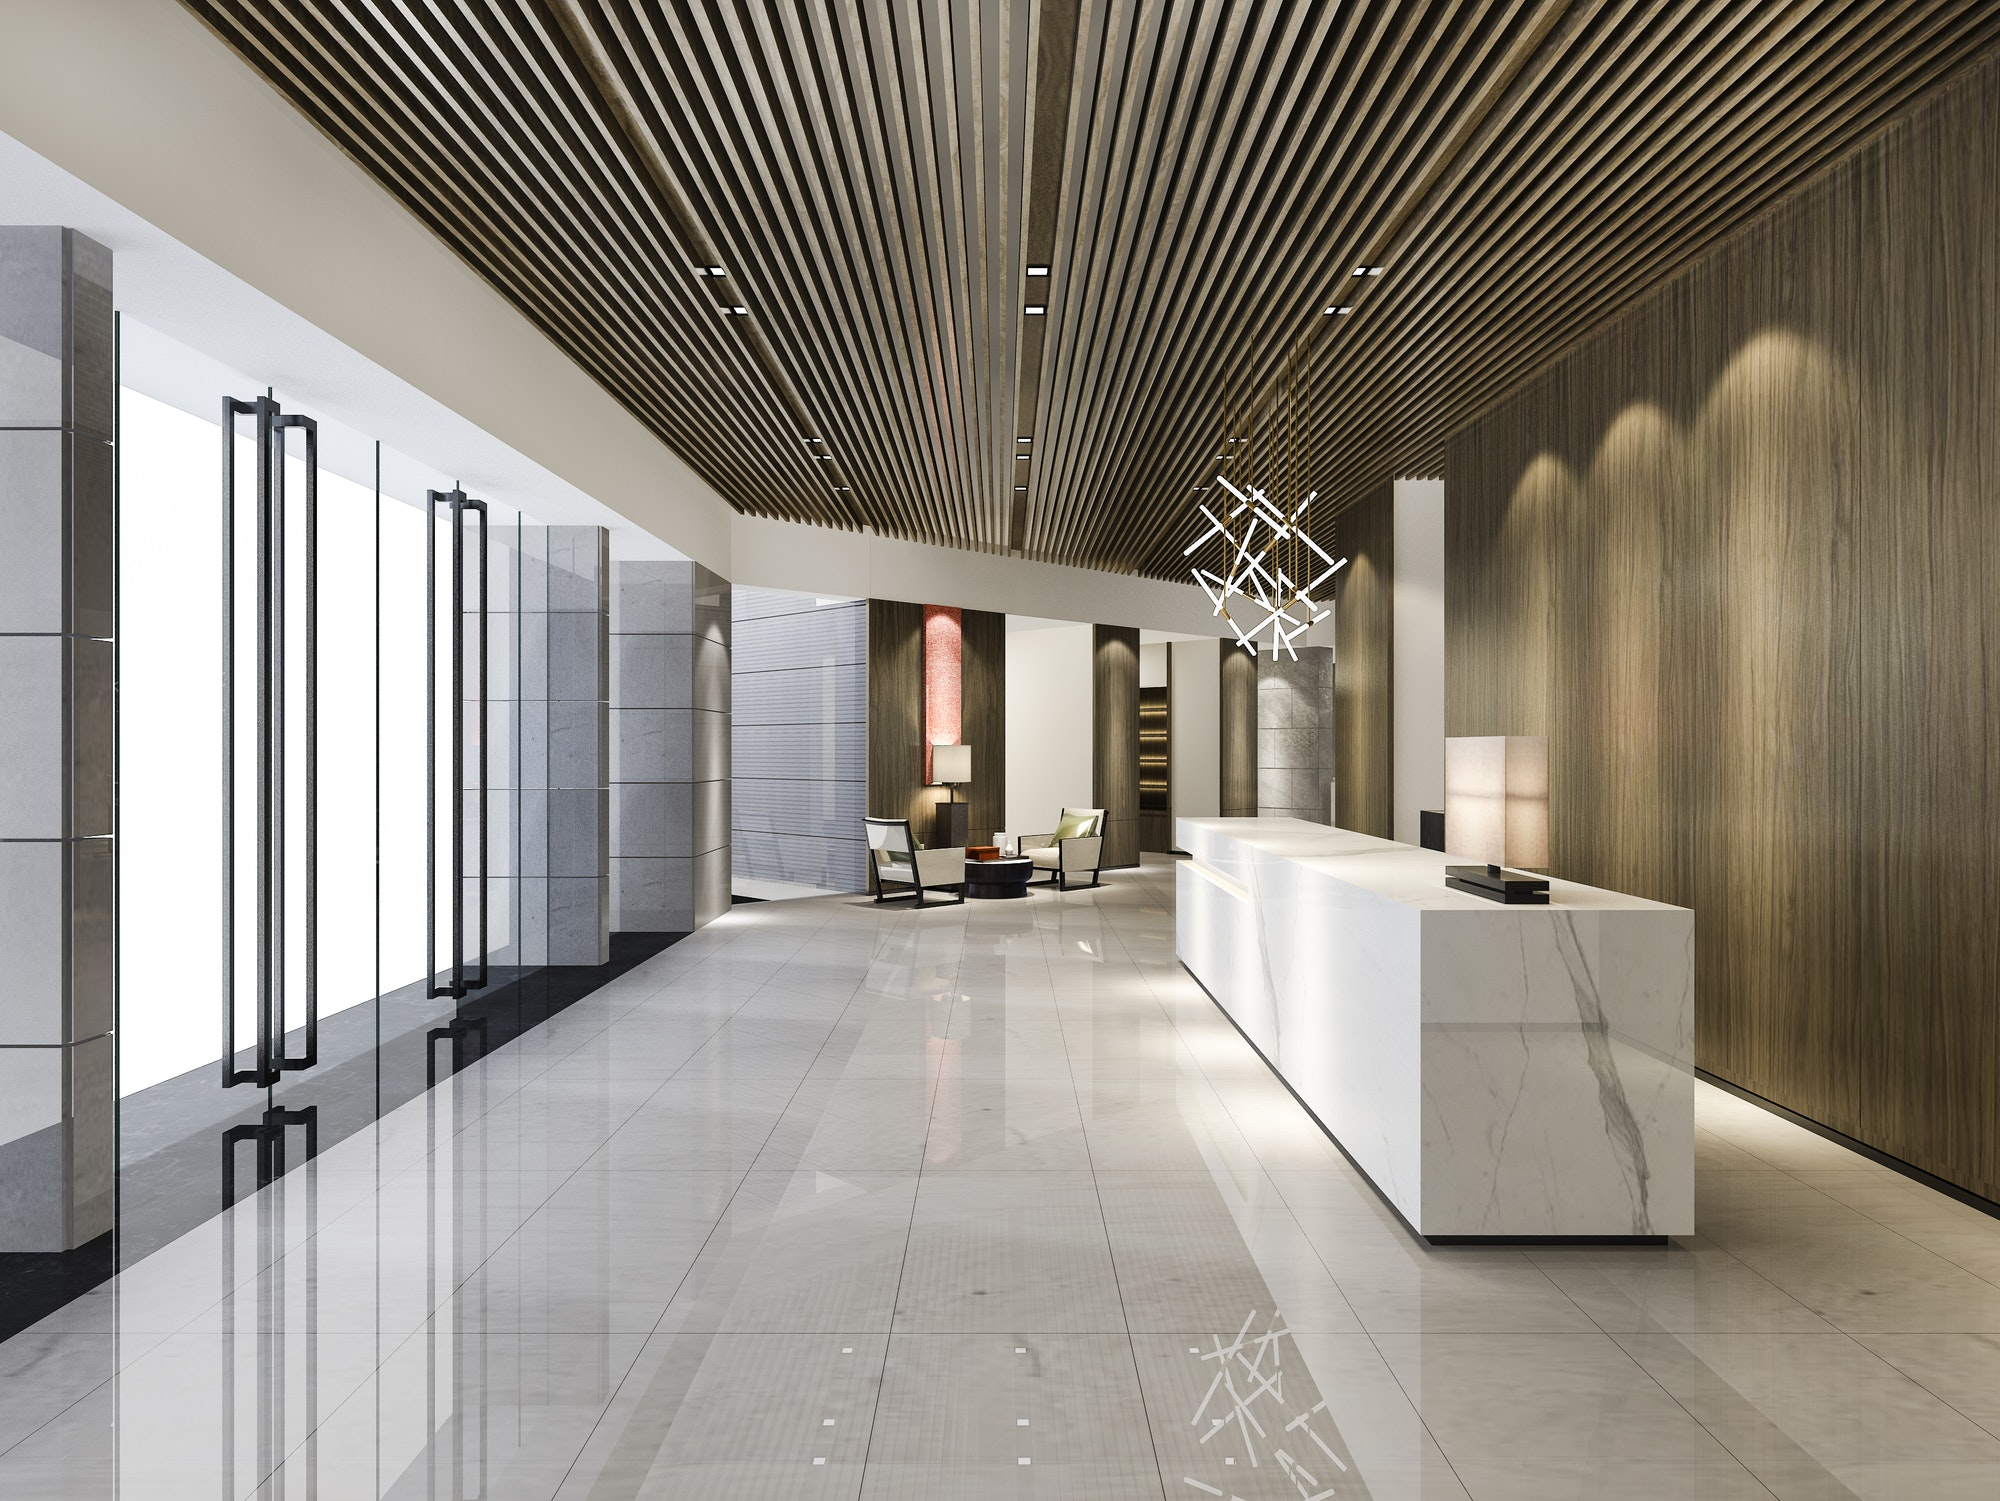 Construcciones reformas Las Palmas luxury hotel reception hall and wood asian style office with modern counter